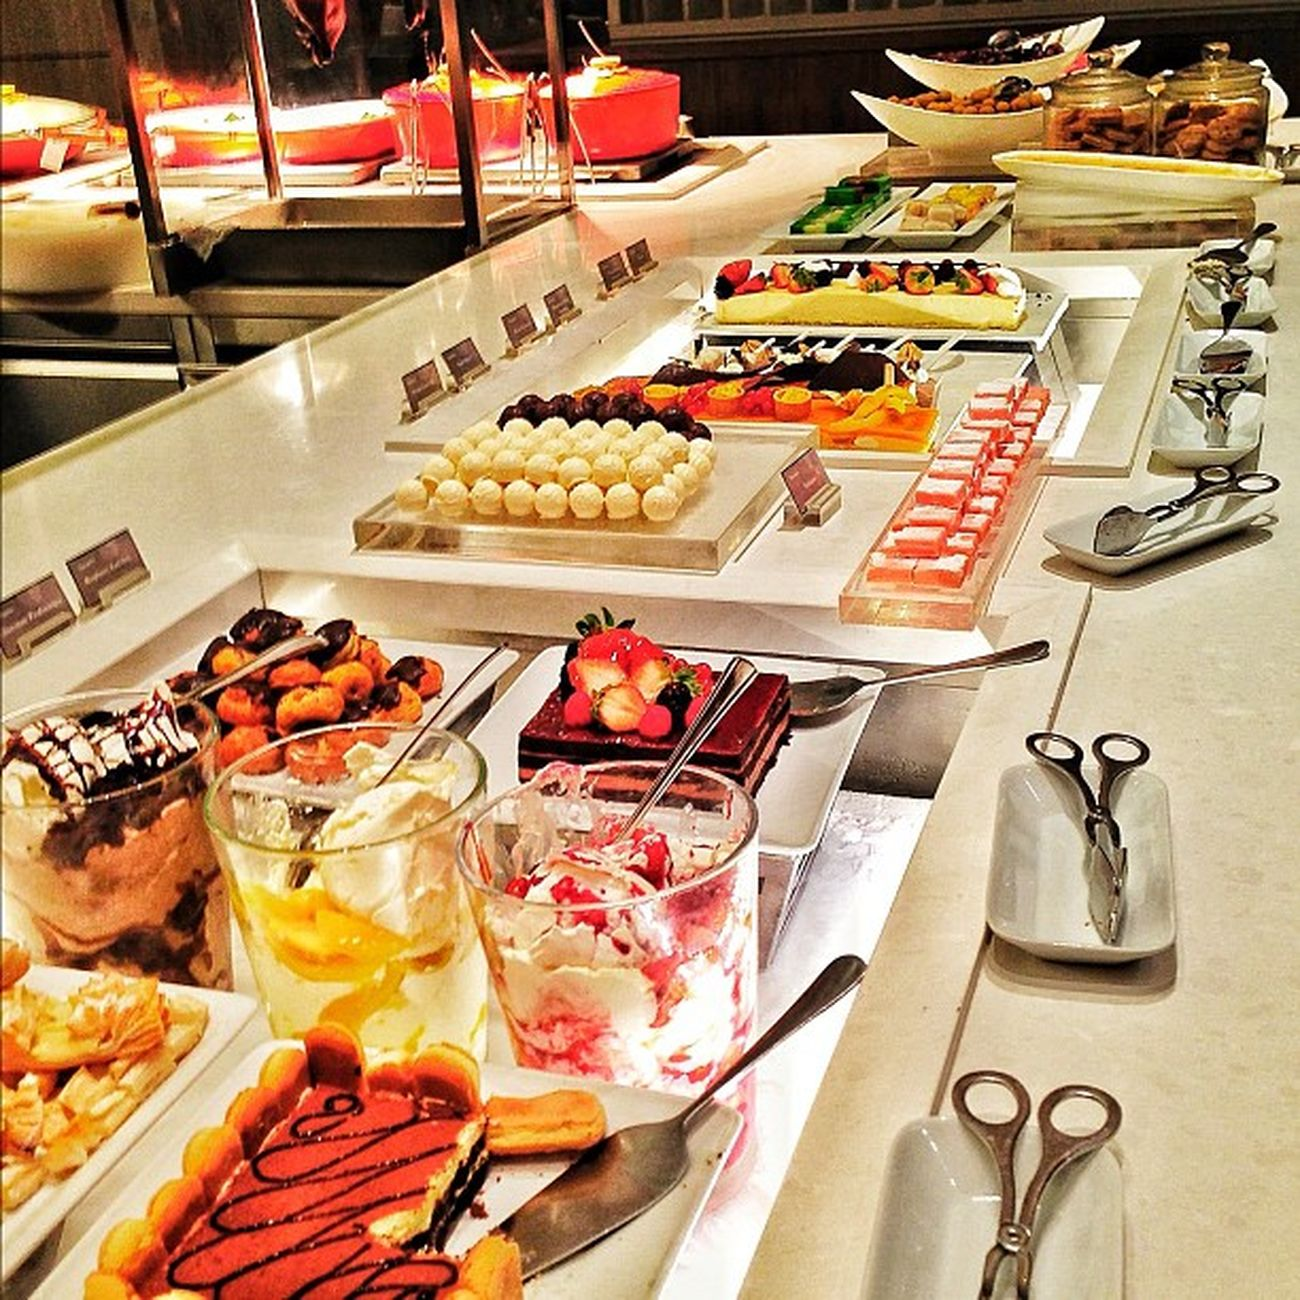 Late Buffet - Dessert Hdr_pics Igcaptions Sfx_hdr Friendsoftheworld HDR Ig_outkast Instanusantara Hdr_styles Genginsapgan Hdr_real Gang_family Gi_challenge_6612 Hdrdynasty Dark_elite HdrIndonesia Blue_colours Gi_hdronly Dark_rev HDR_Indonesia Open_dynasty Hdroftheday Hdrartsclub Hdrama Hdrdarkside Hdrepublic Ig_syles Iphoneasia The_dark_side